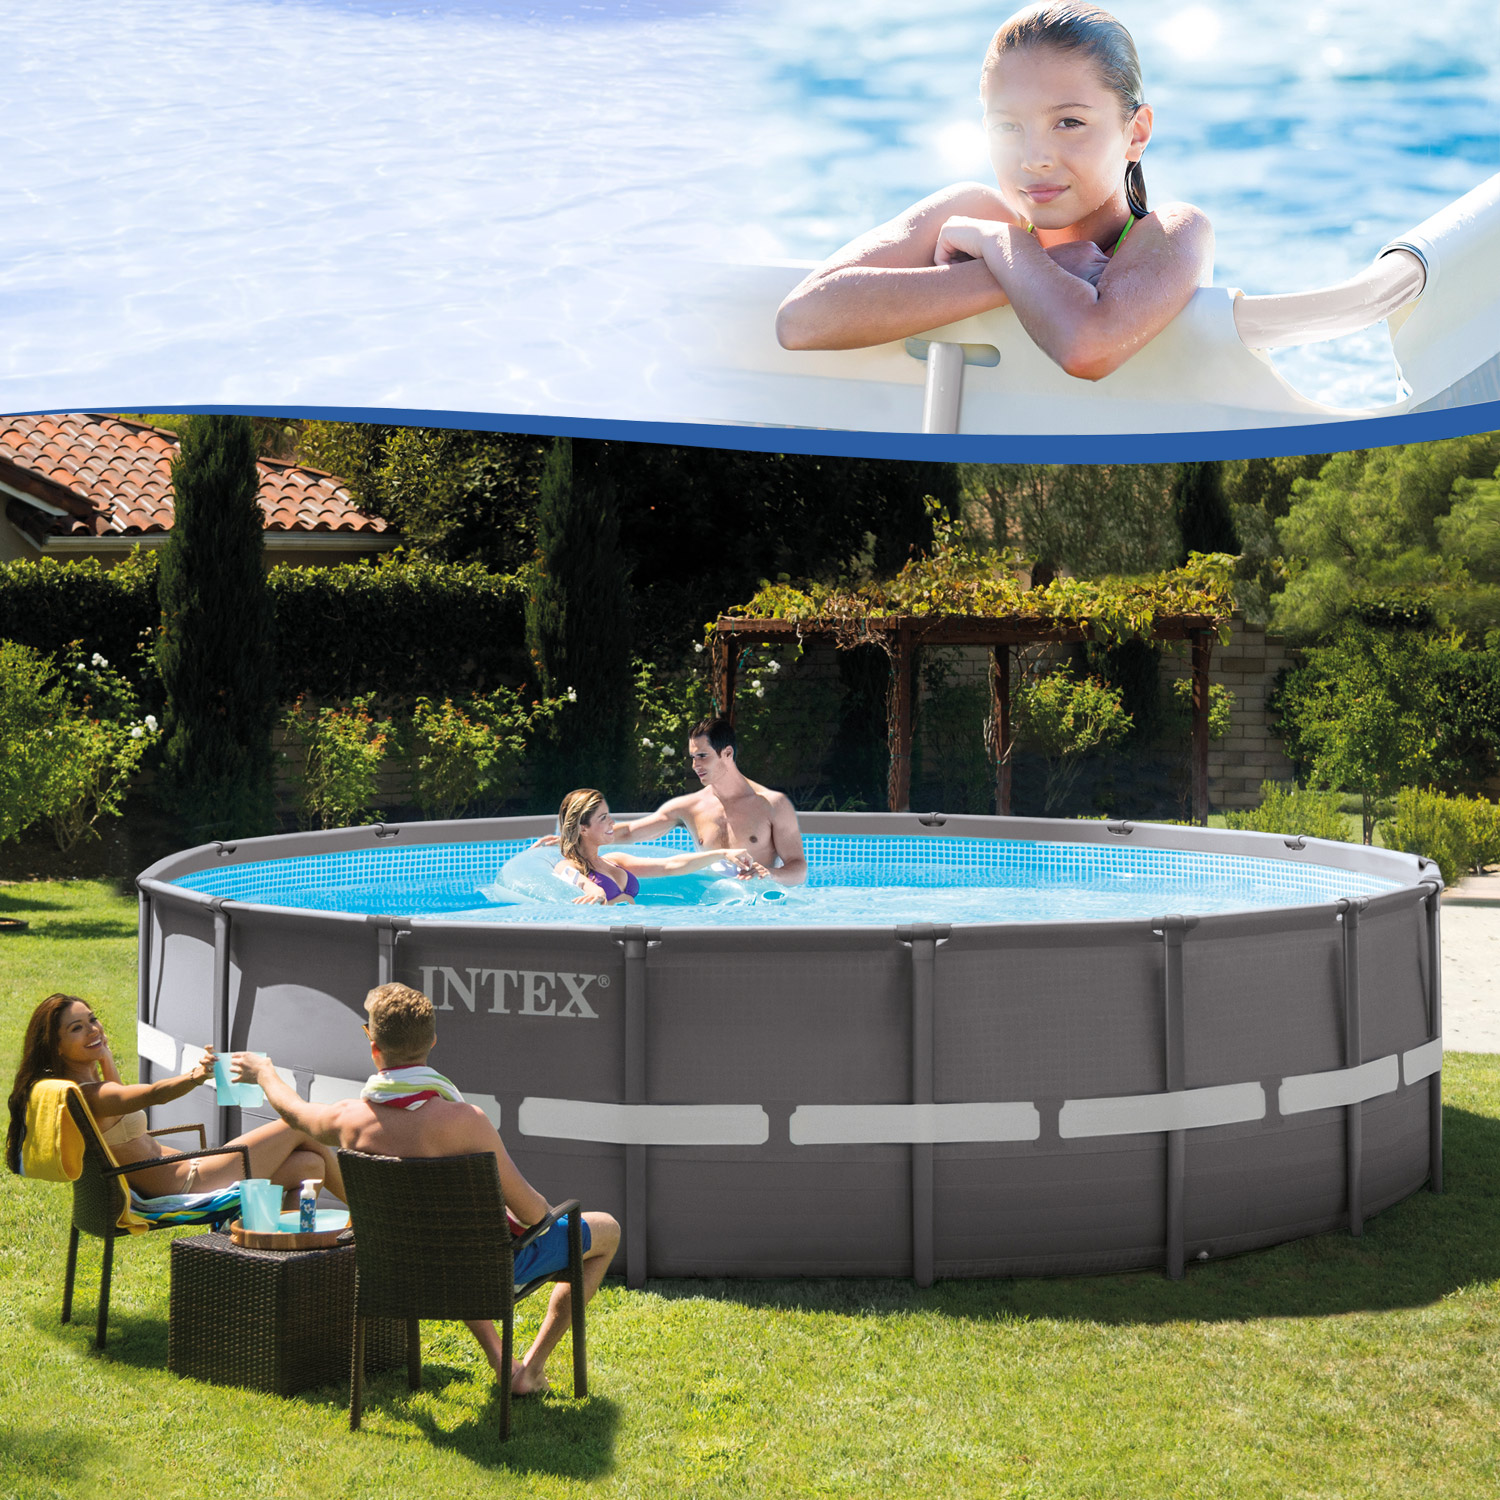 intex 488x122 schwimmbecken swimming pool schwimmbad stahlwand metallrahmen neu ebay. Black Bedroom Furniture Sets. Home Design Ideas